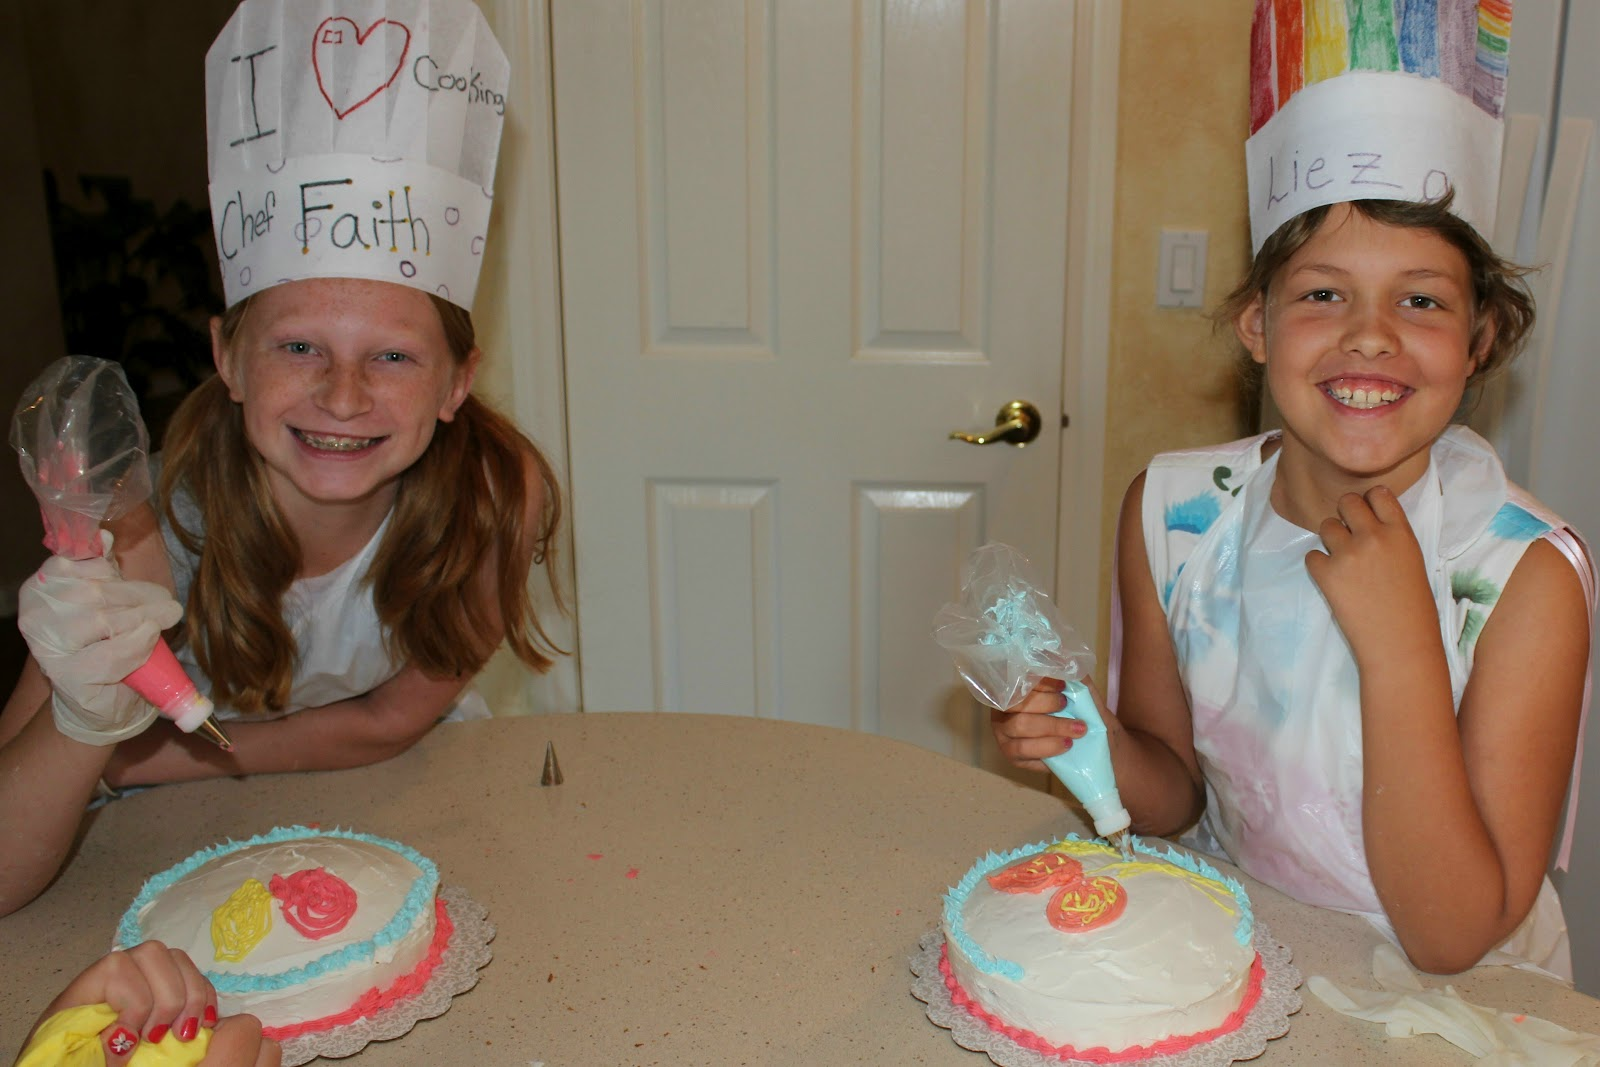 Cake Decorating Classes Cardiff : My Cool Kid Cooks: Summer Camp with My Cool Kid Cooks!